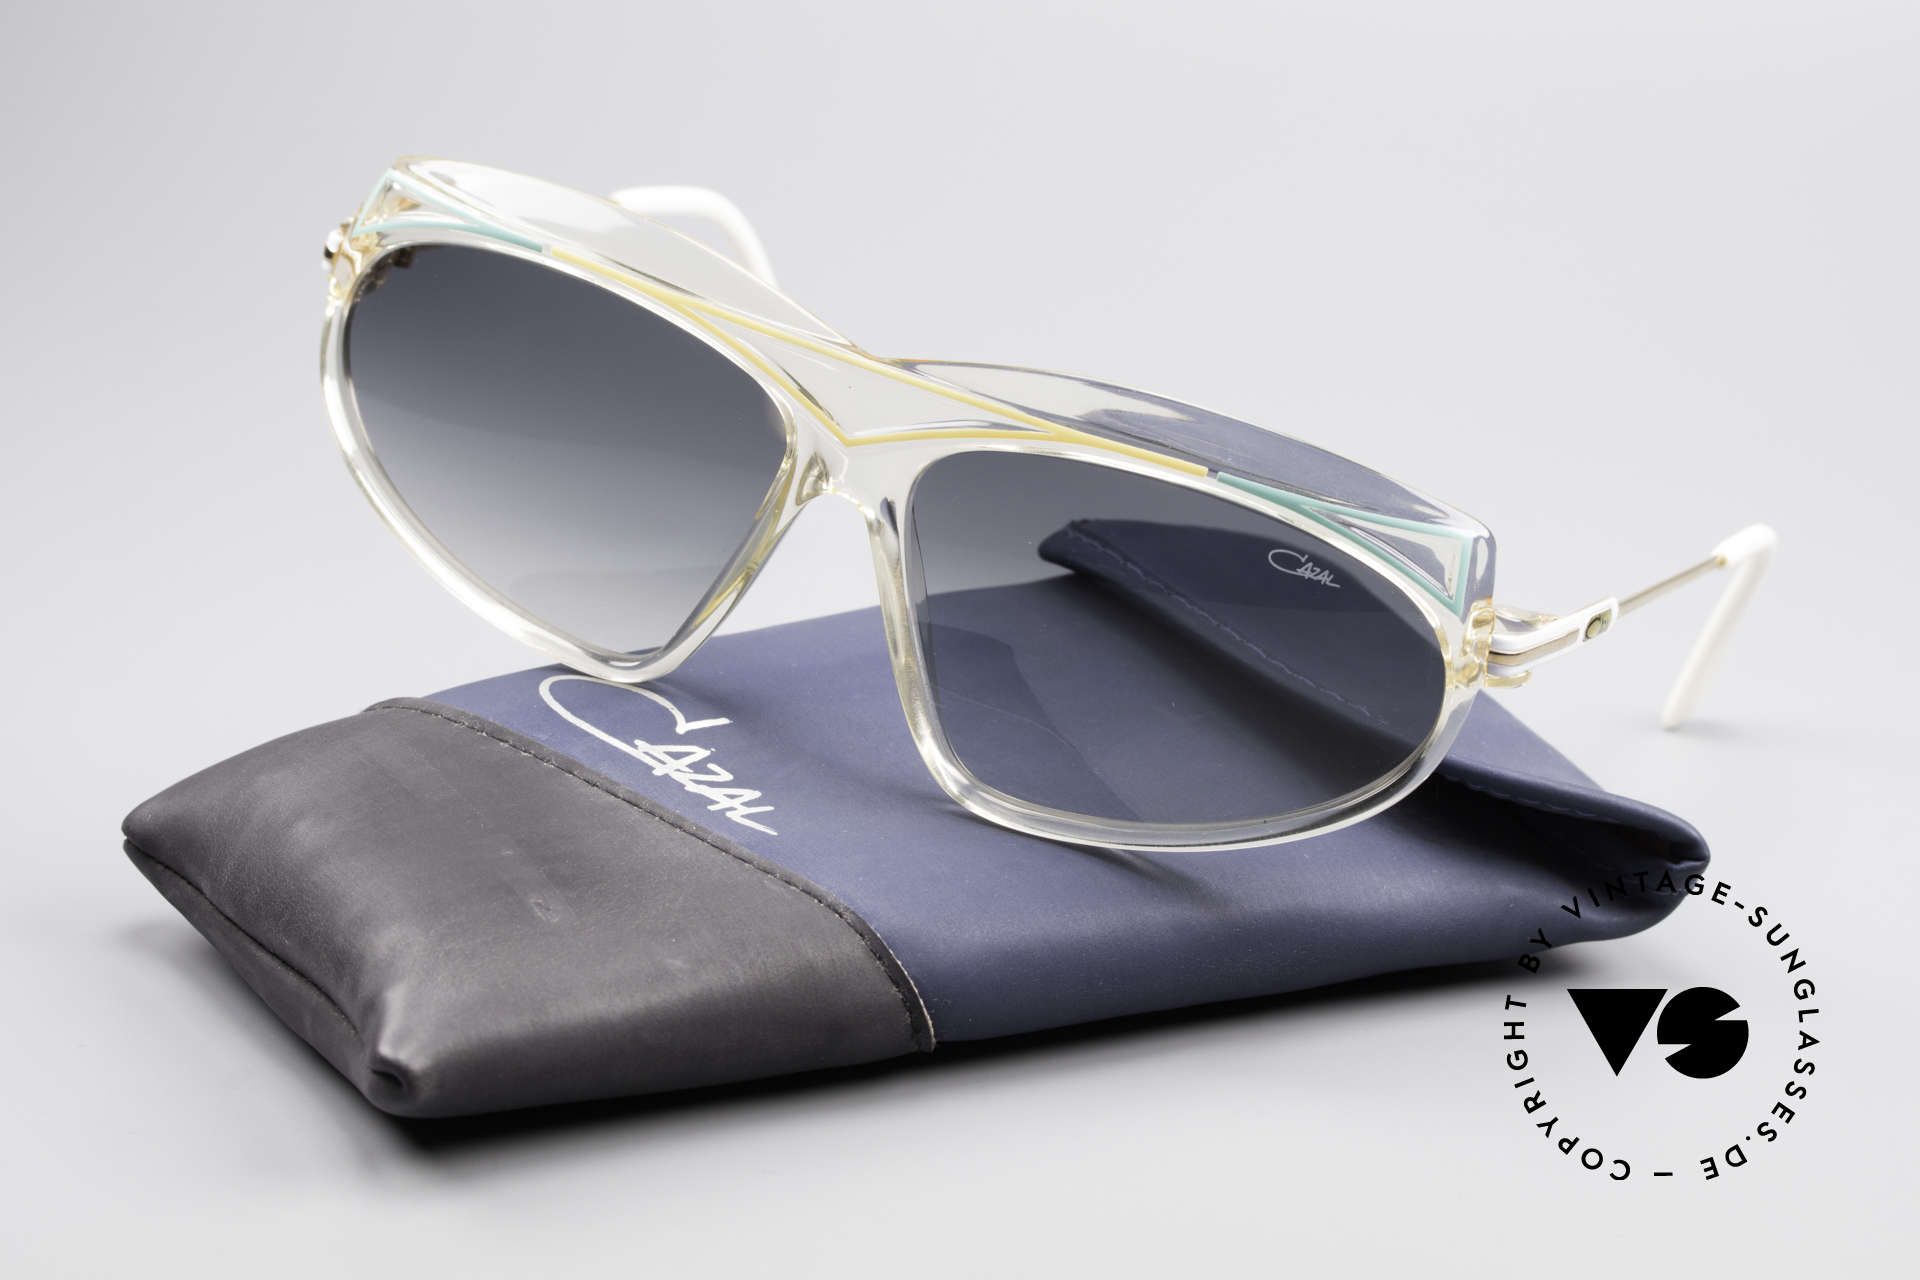 Cazal 854 XL True Vintage Hip Hop Shades, NO retro sunglasses but a 30 years old vintage original, Made for Women